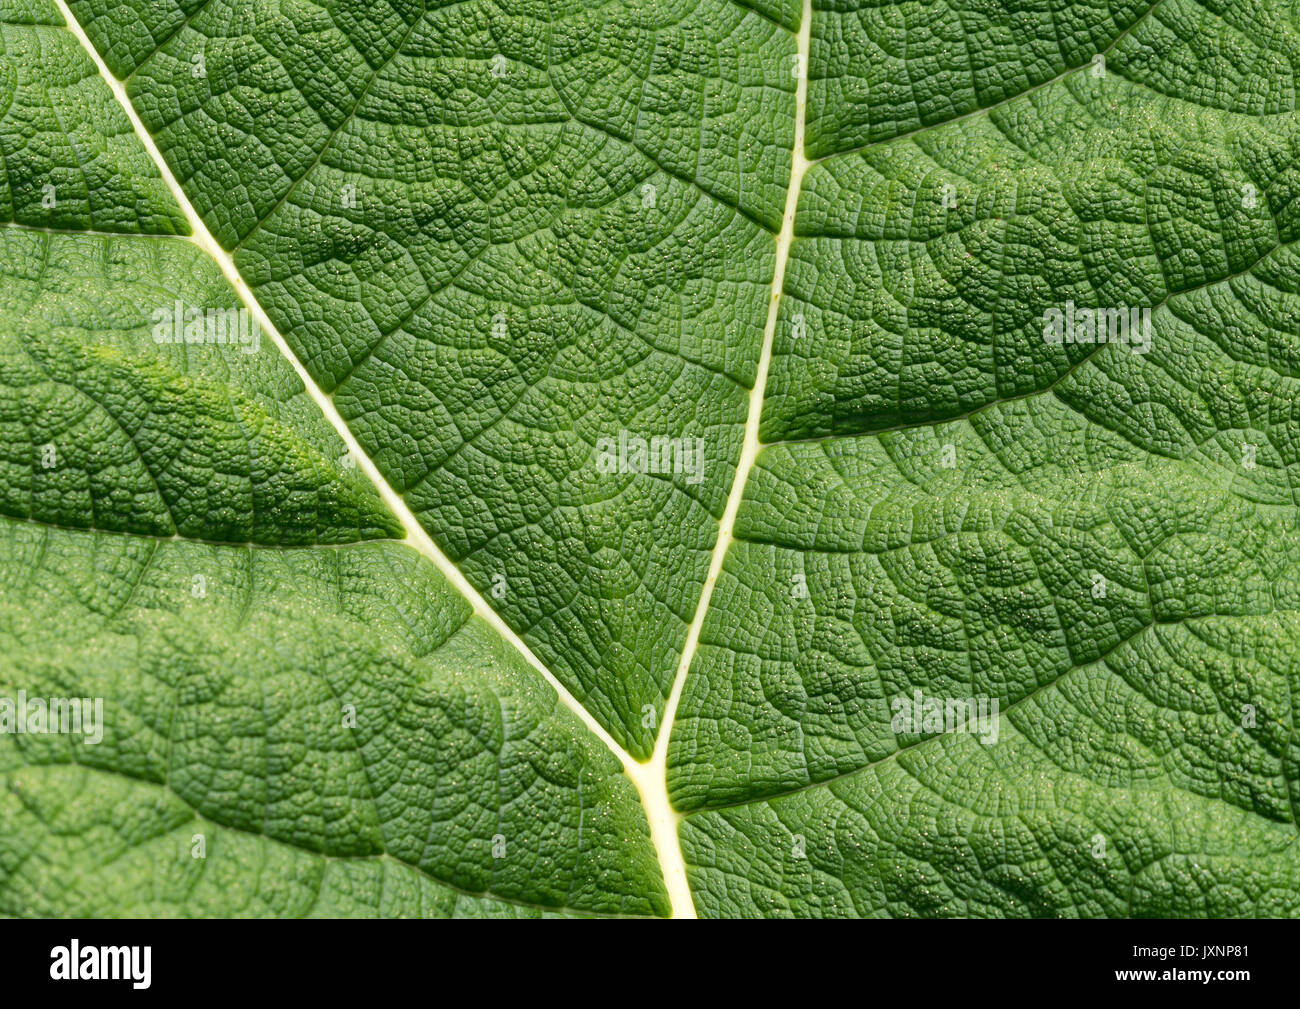 Gunnera leaf. Giant Gunnera leaves are often called 'Dinosaur food' due to their prehistoric appearance Stock Photo